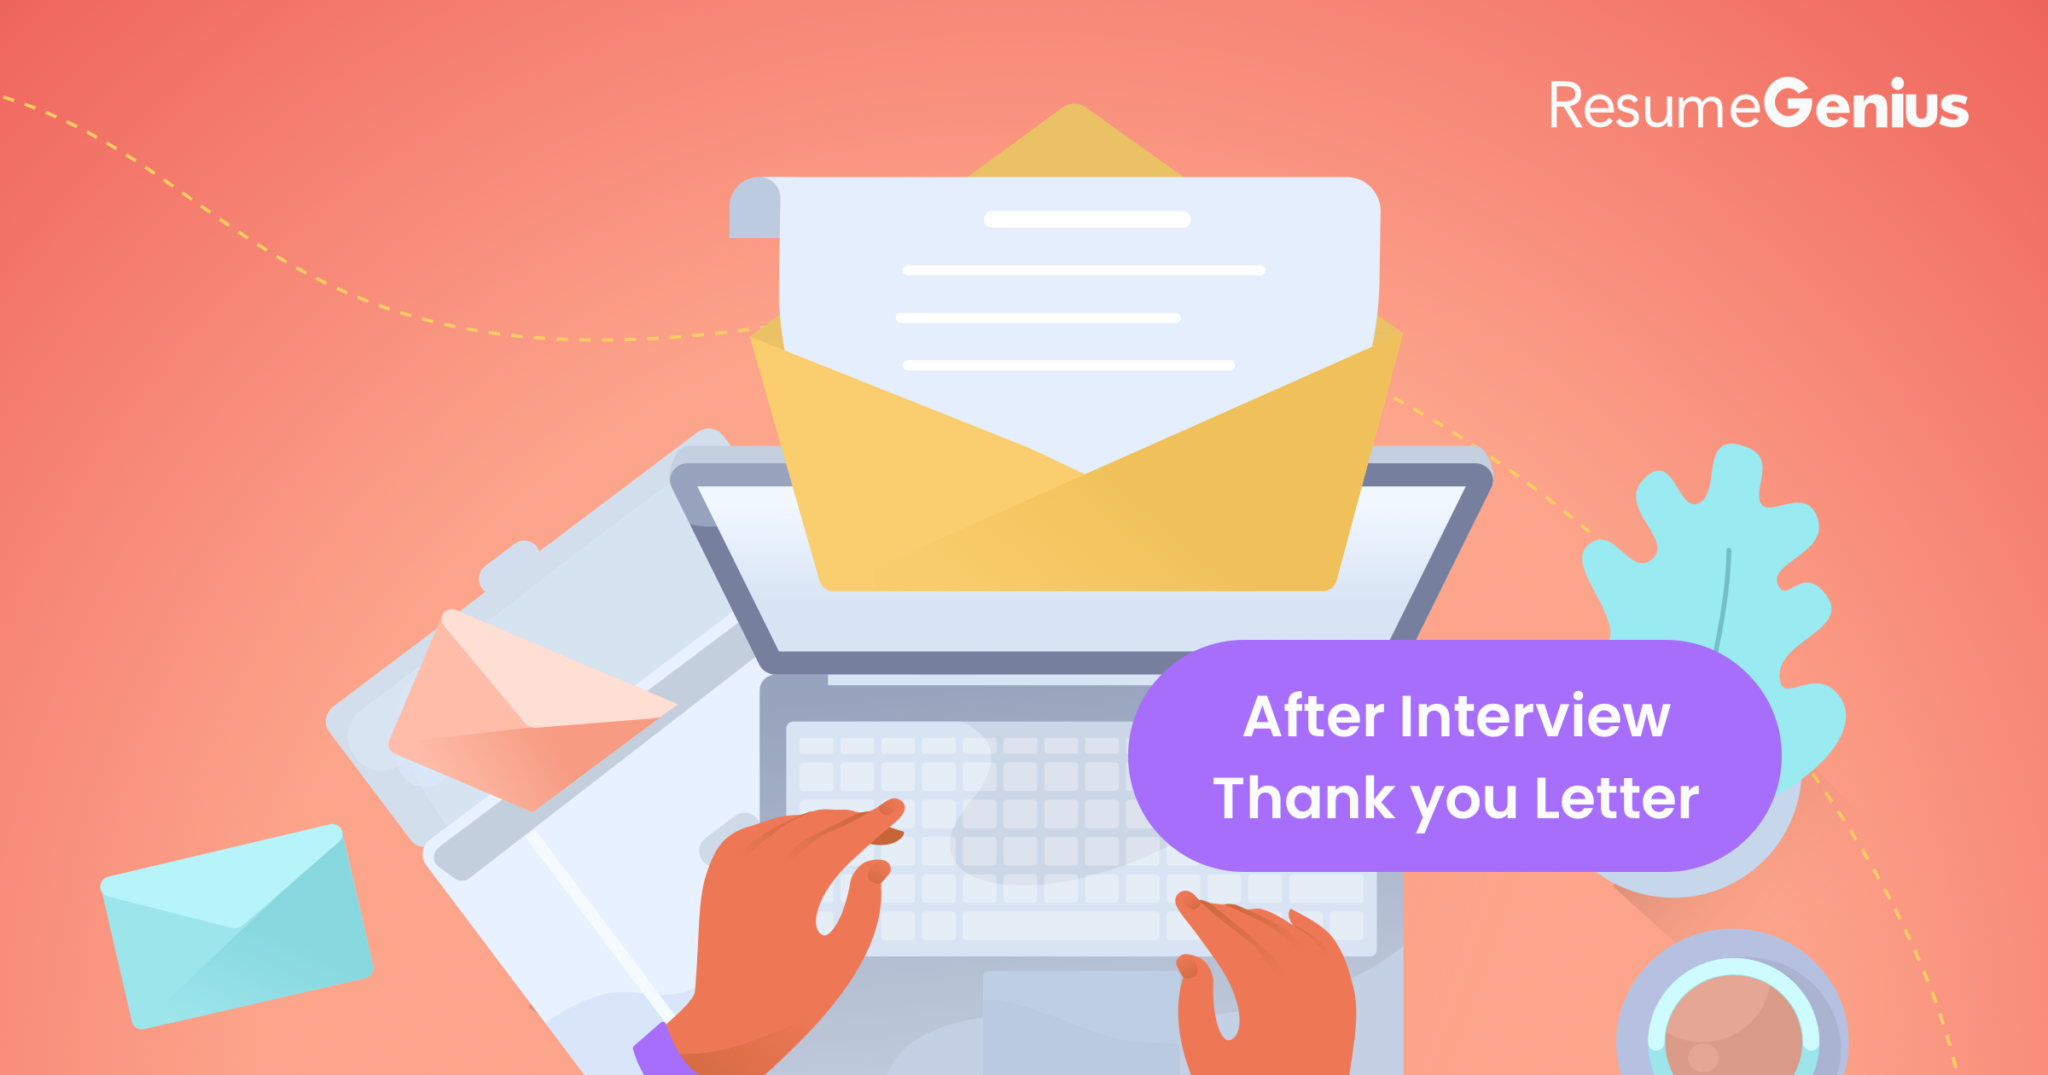 After Interview Thank You Letters Samples | Free MS Word Templates